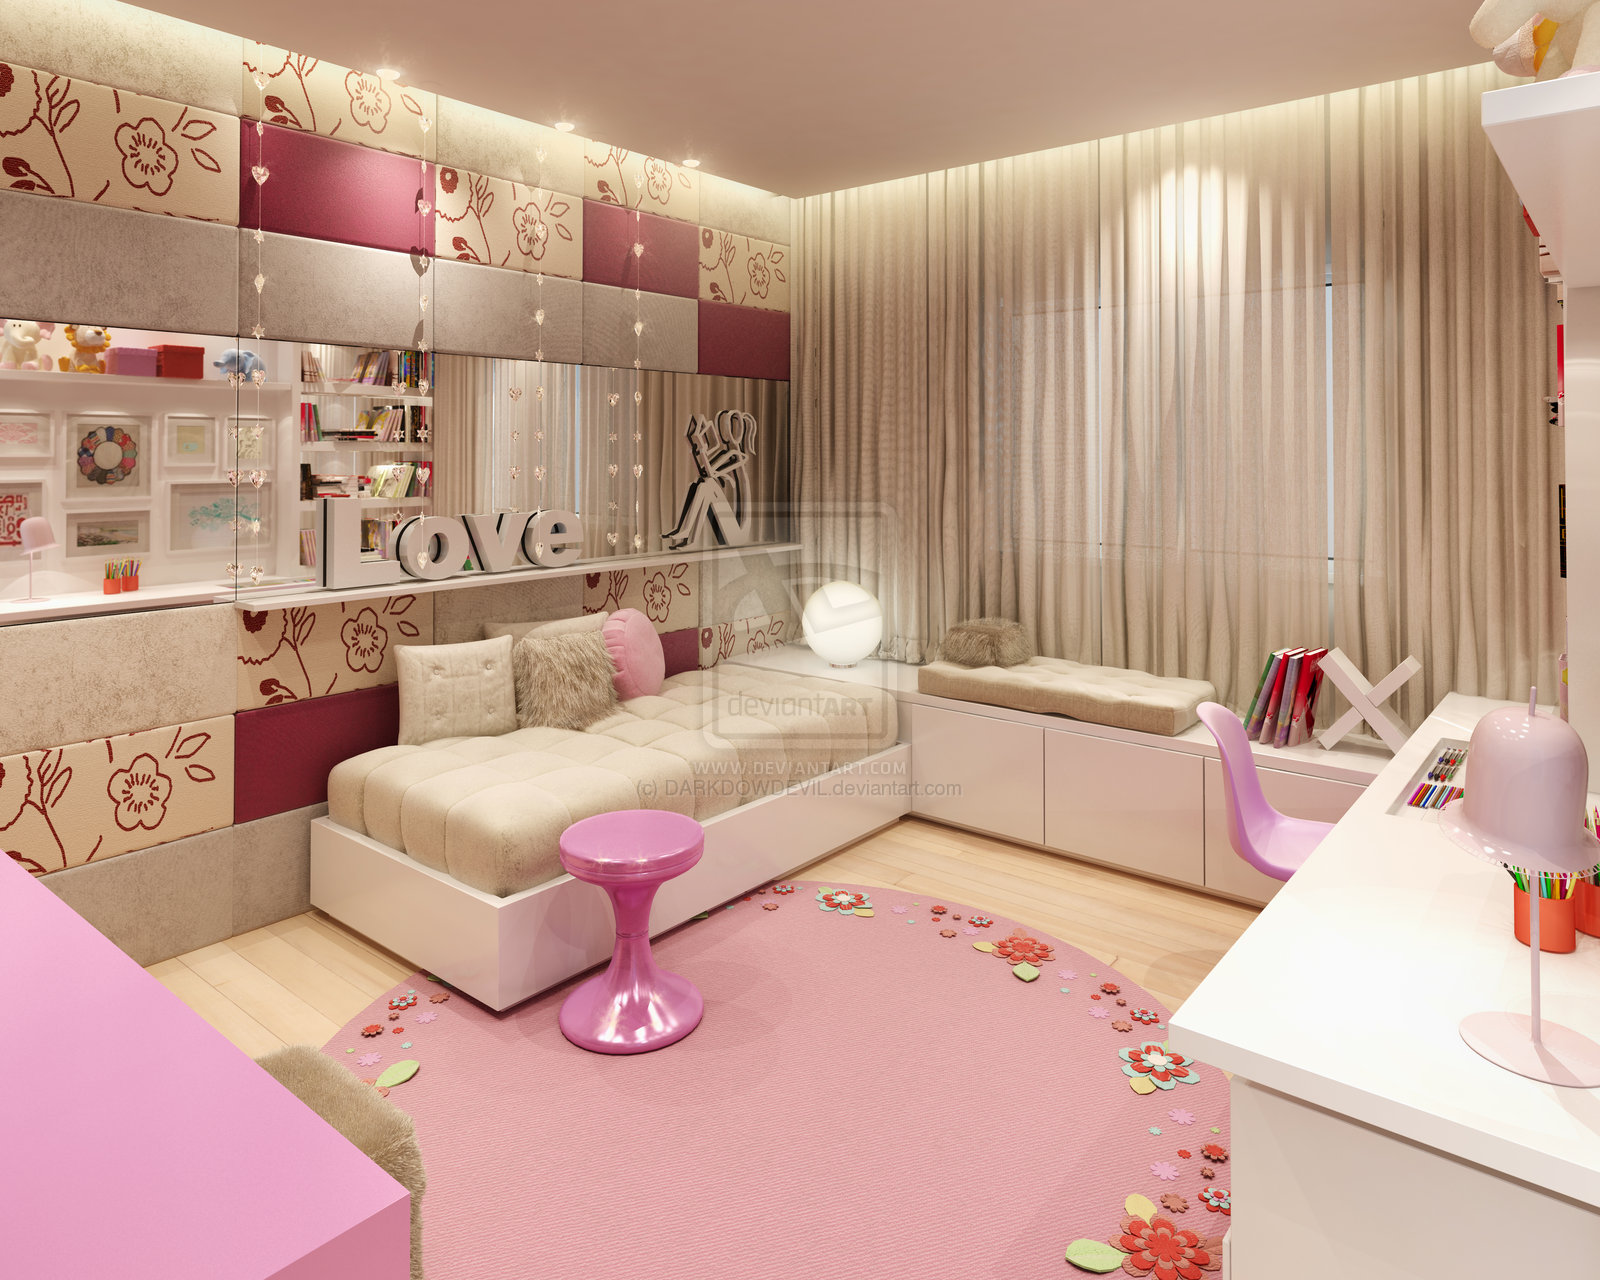 Best girl bedrooms in the world home decor and interior for Interior design bedroom pink